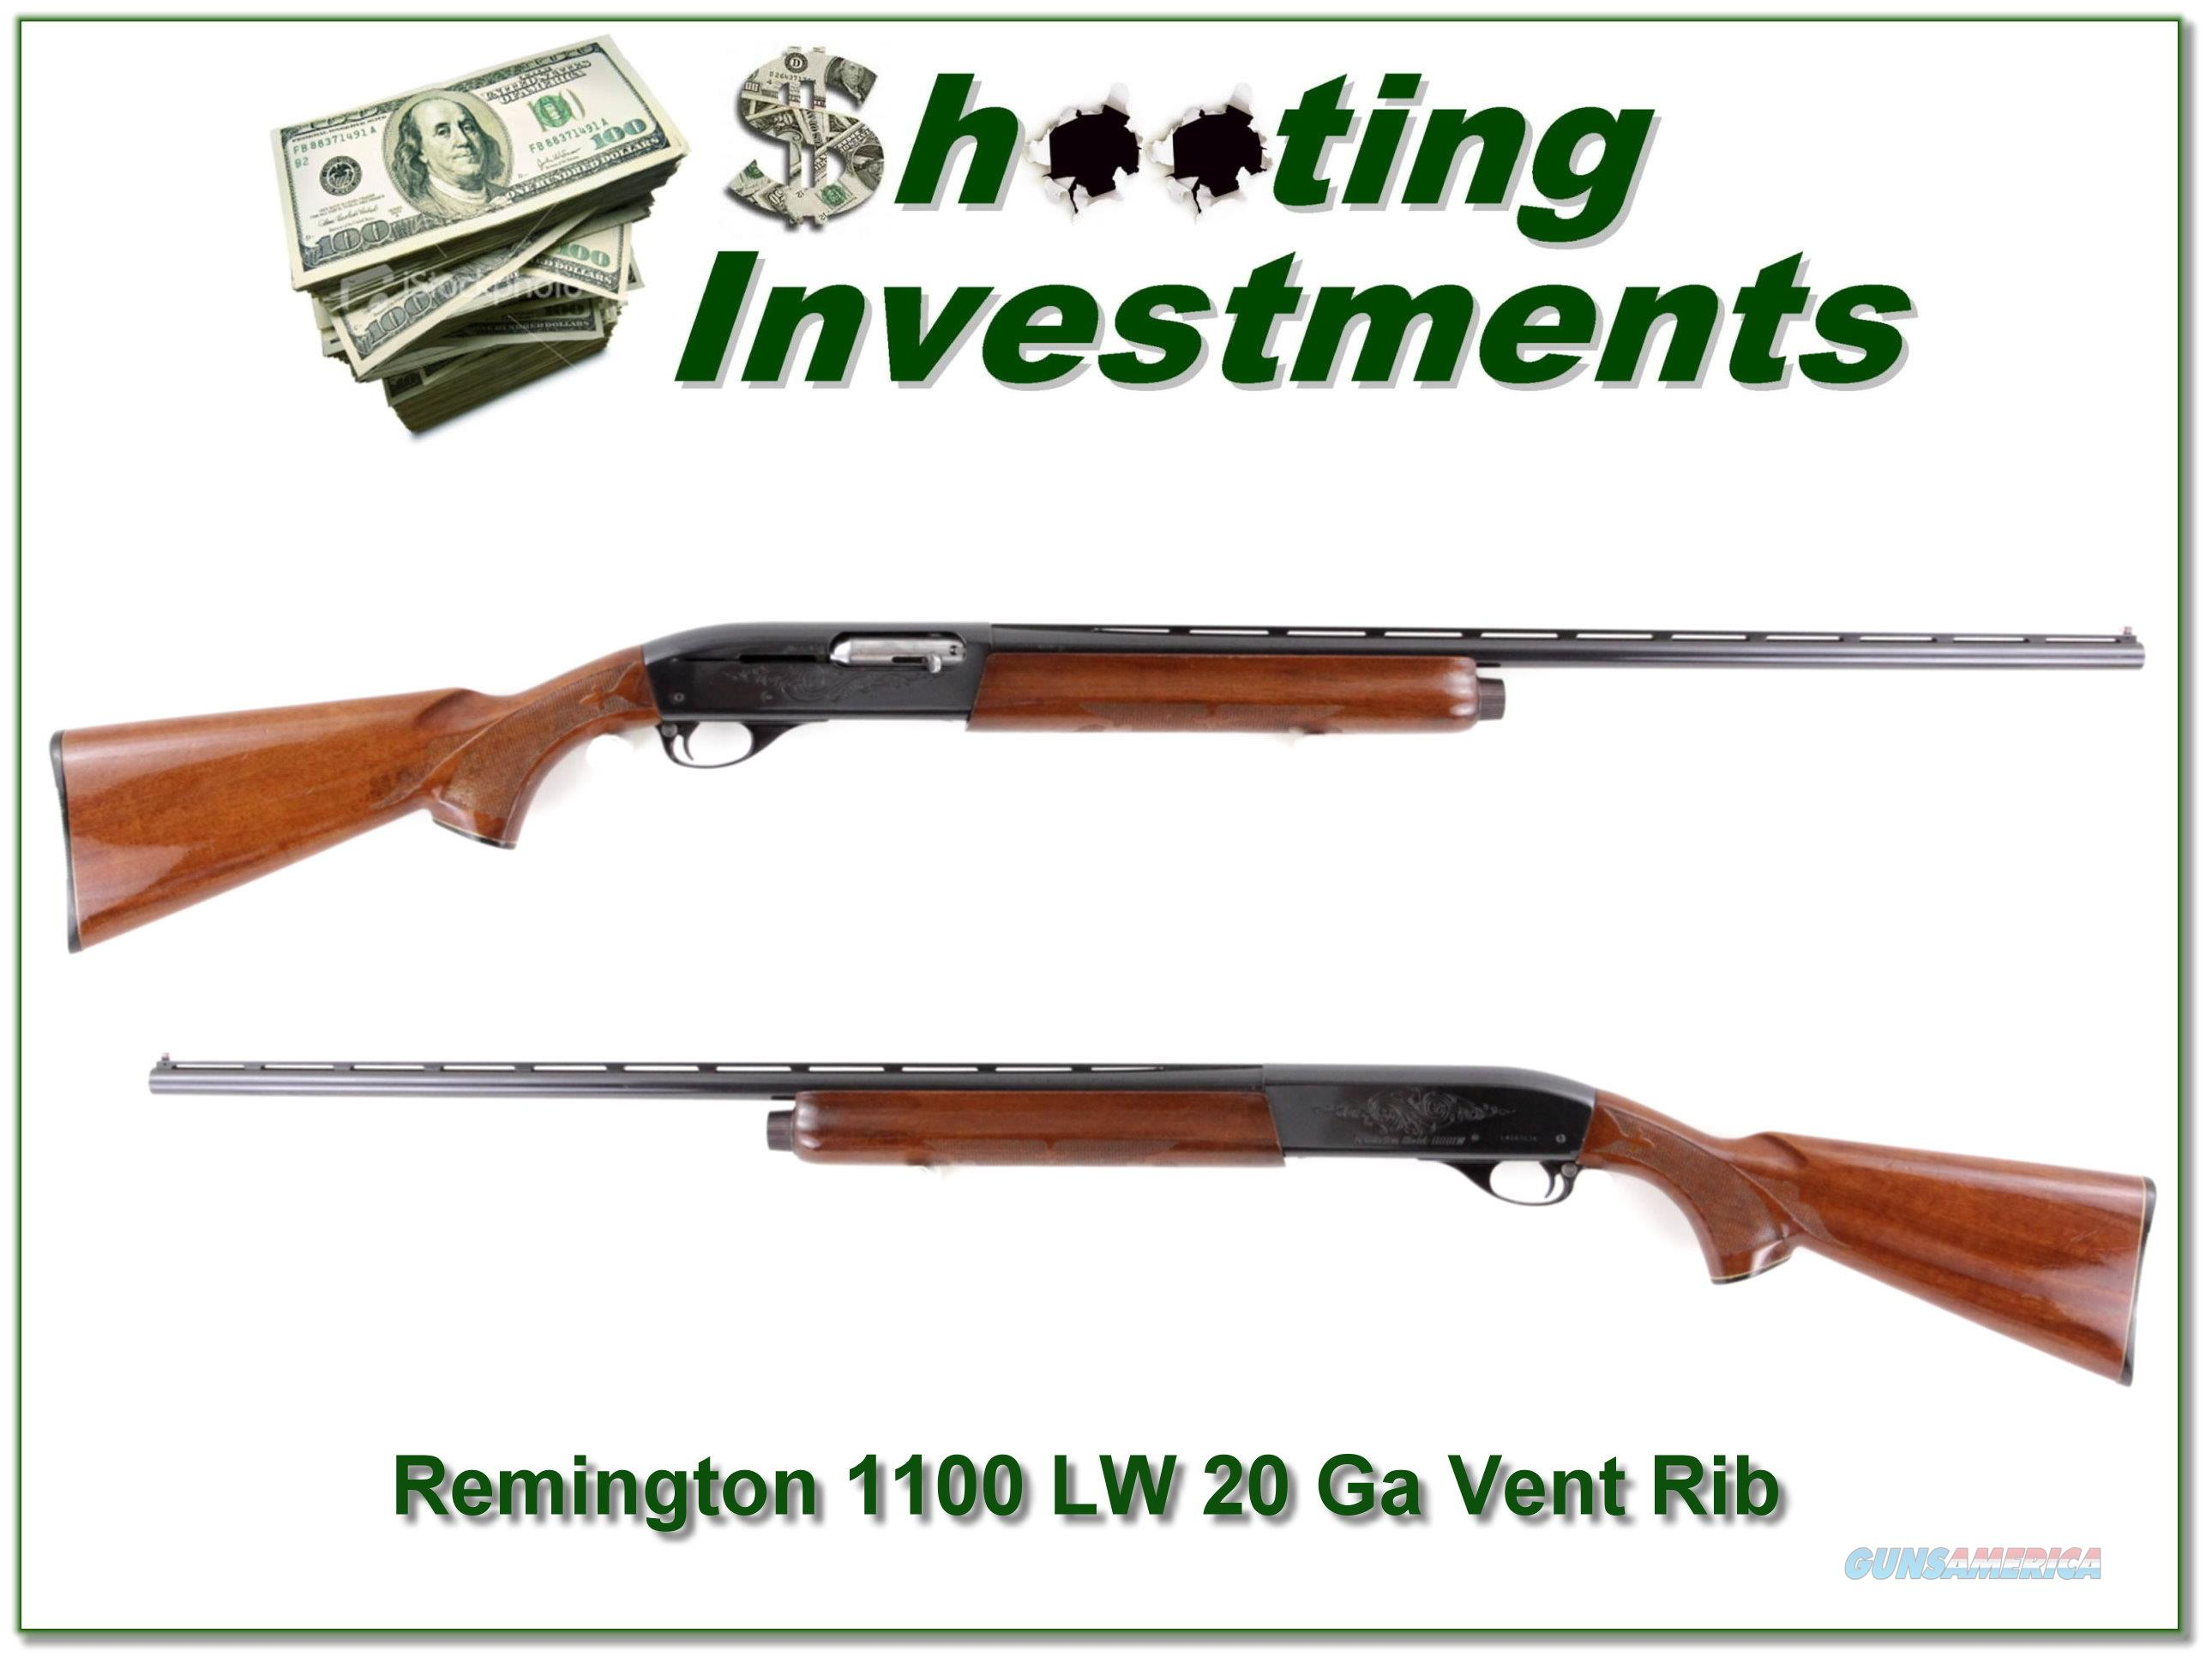 Remington 1100 LW 1100LW 20 Gauge Vent Rib  Guns > Shotguns > Remington Shotguns  > Autoloaders > Hunting